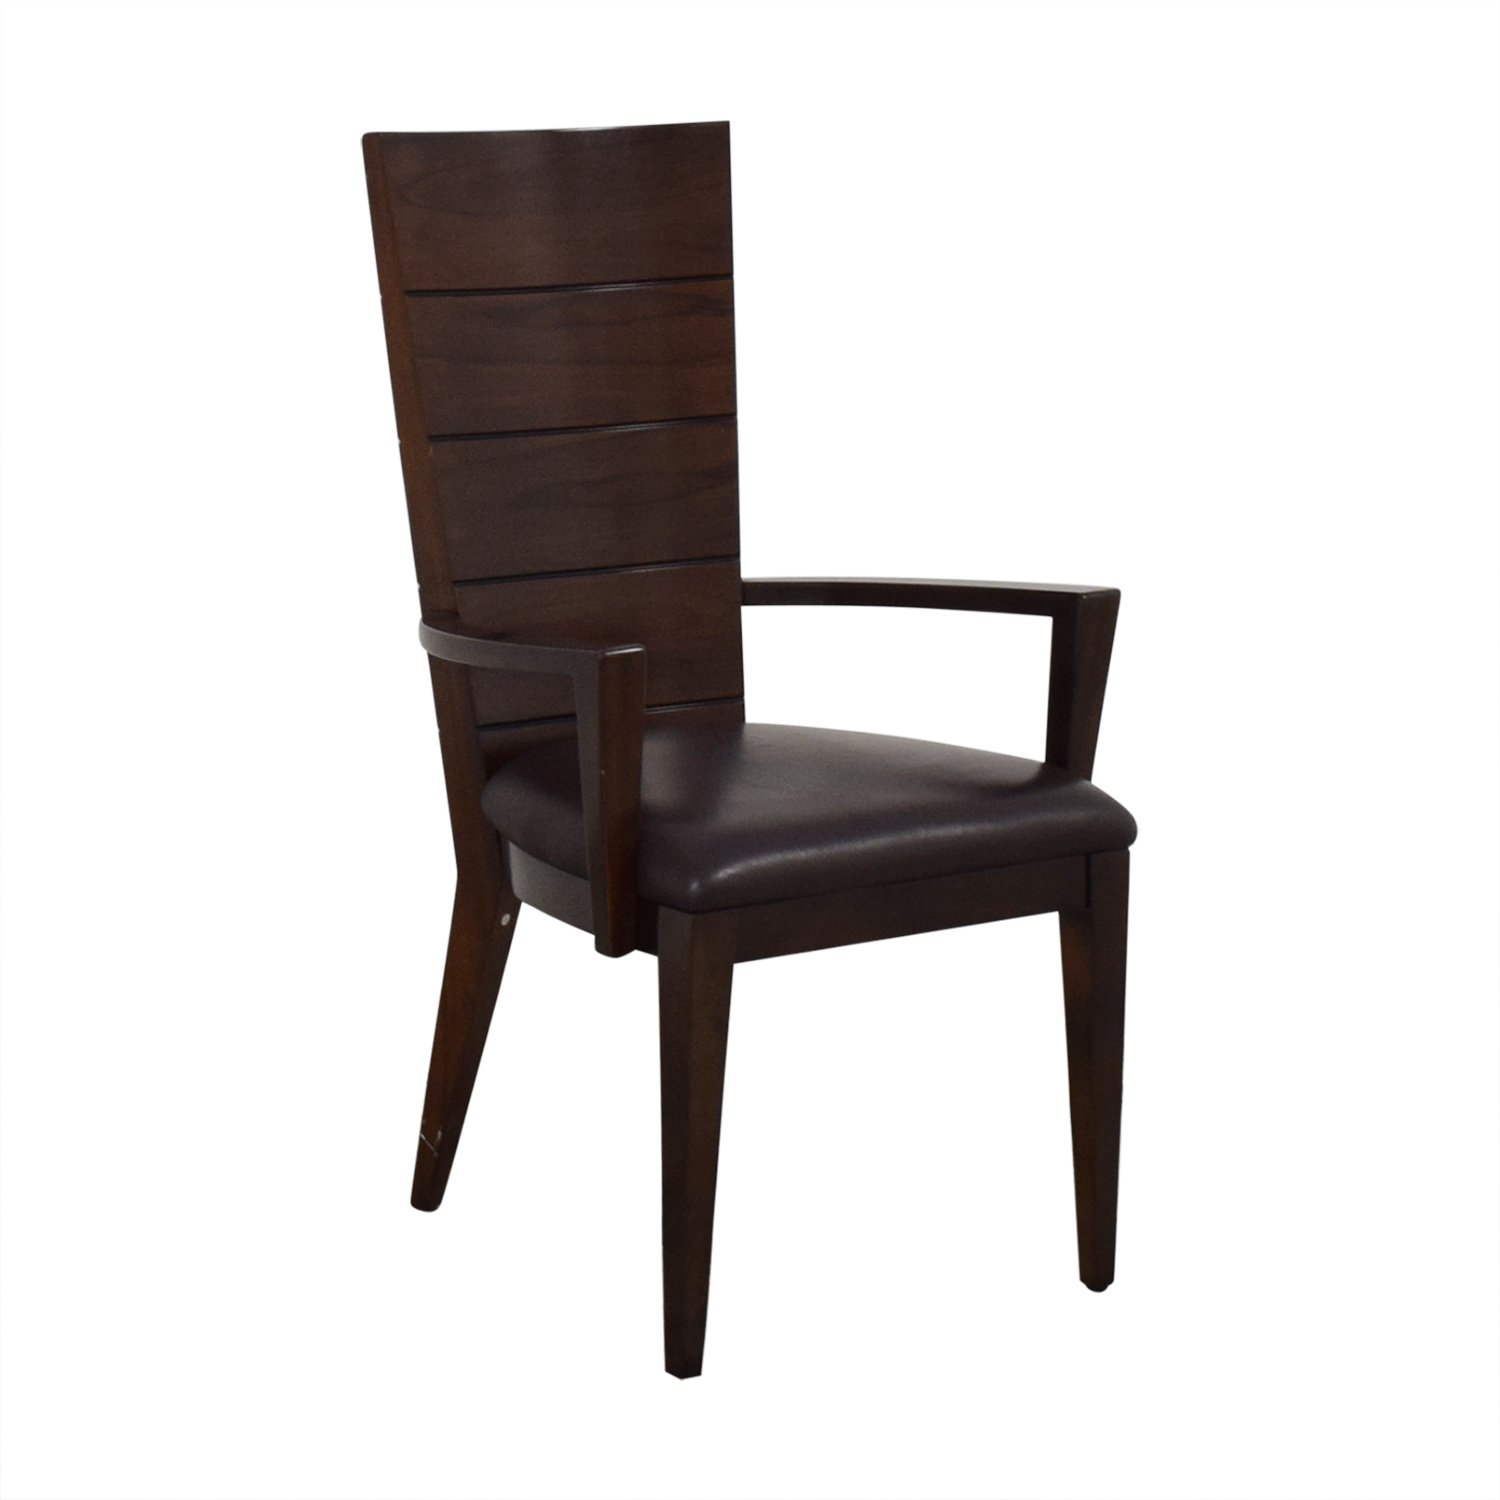 Elio Elio High Gloss Wood and Leather Chair Dining Chairs